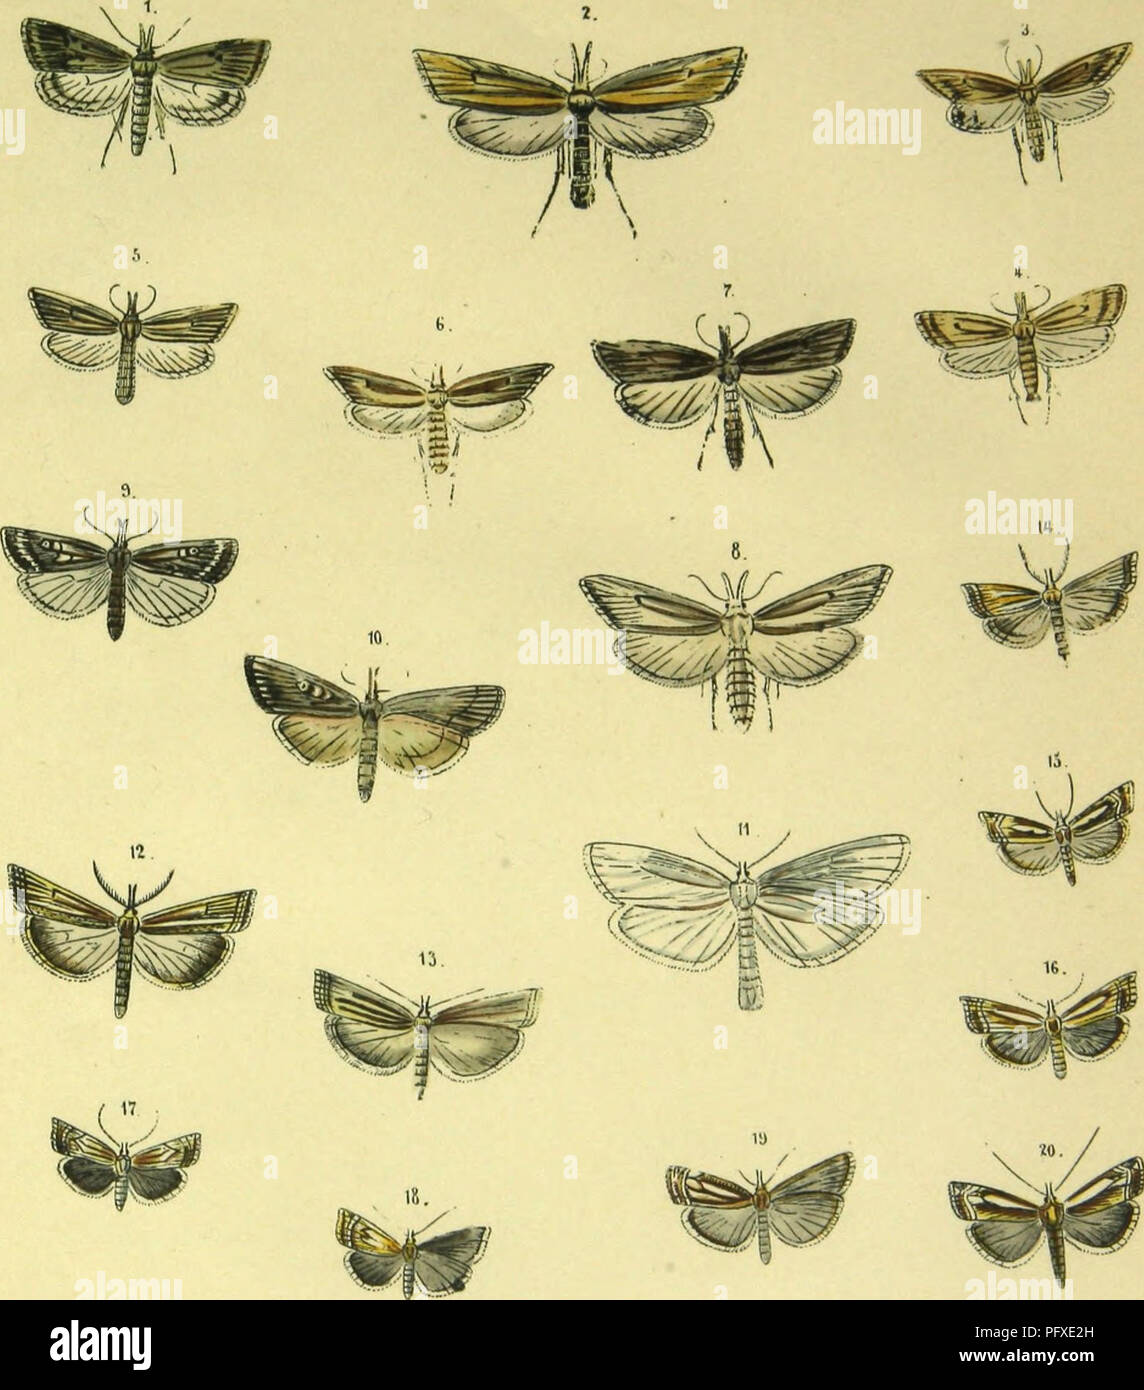 ". Abbildung und Beschreibung europa?ischer Schmetterlinge in systematischer Reihenfolge. Lepidoptera. l.G.CBlL0.1.n.SClRPOPEGAI.ID.(;KAMBl,S 1. l'af: J.. 21 Vhm '%%p^ ""7'. Please note that these images are extracted from scanned page images that may have been digitally enhanced for readability - coloration and appearance of these illustrations may not perfectly resemble the original work.. Praun, Sigmund von. Nu?rnberg, Bauer & Raspe - Stock Image"